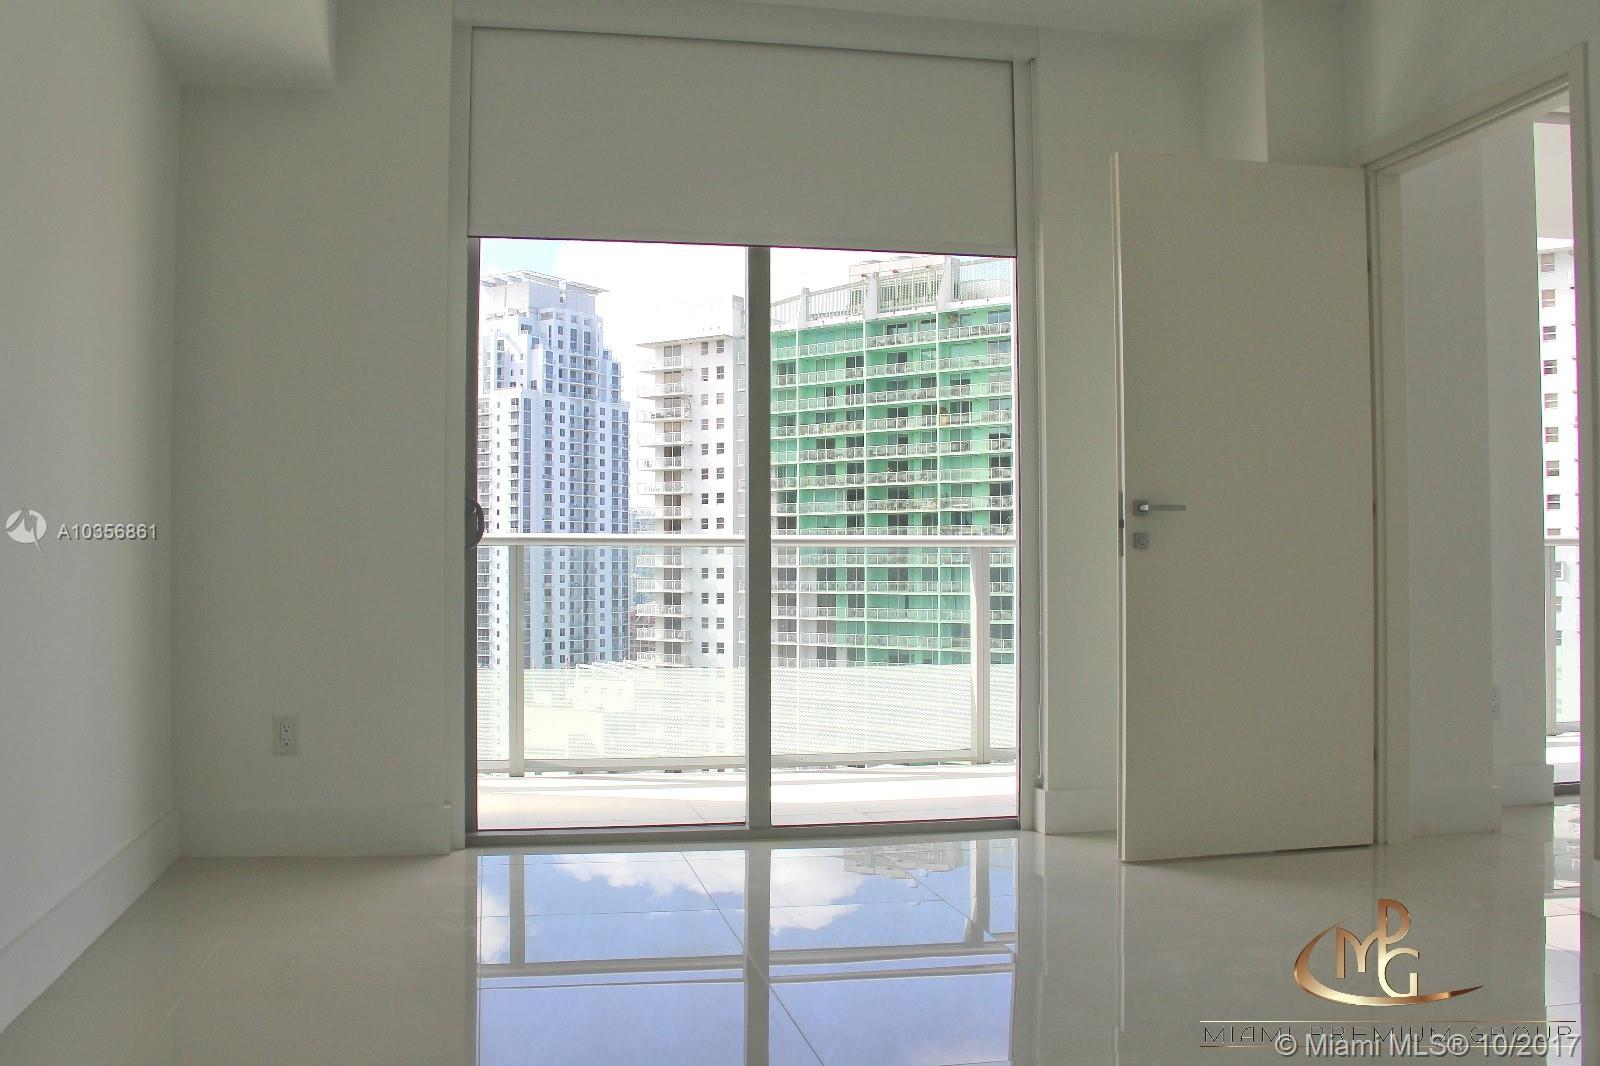 Brickell House image #3